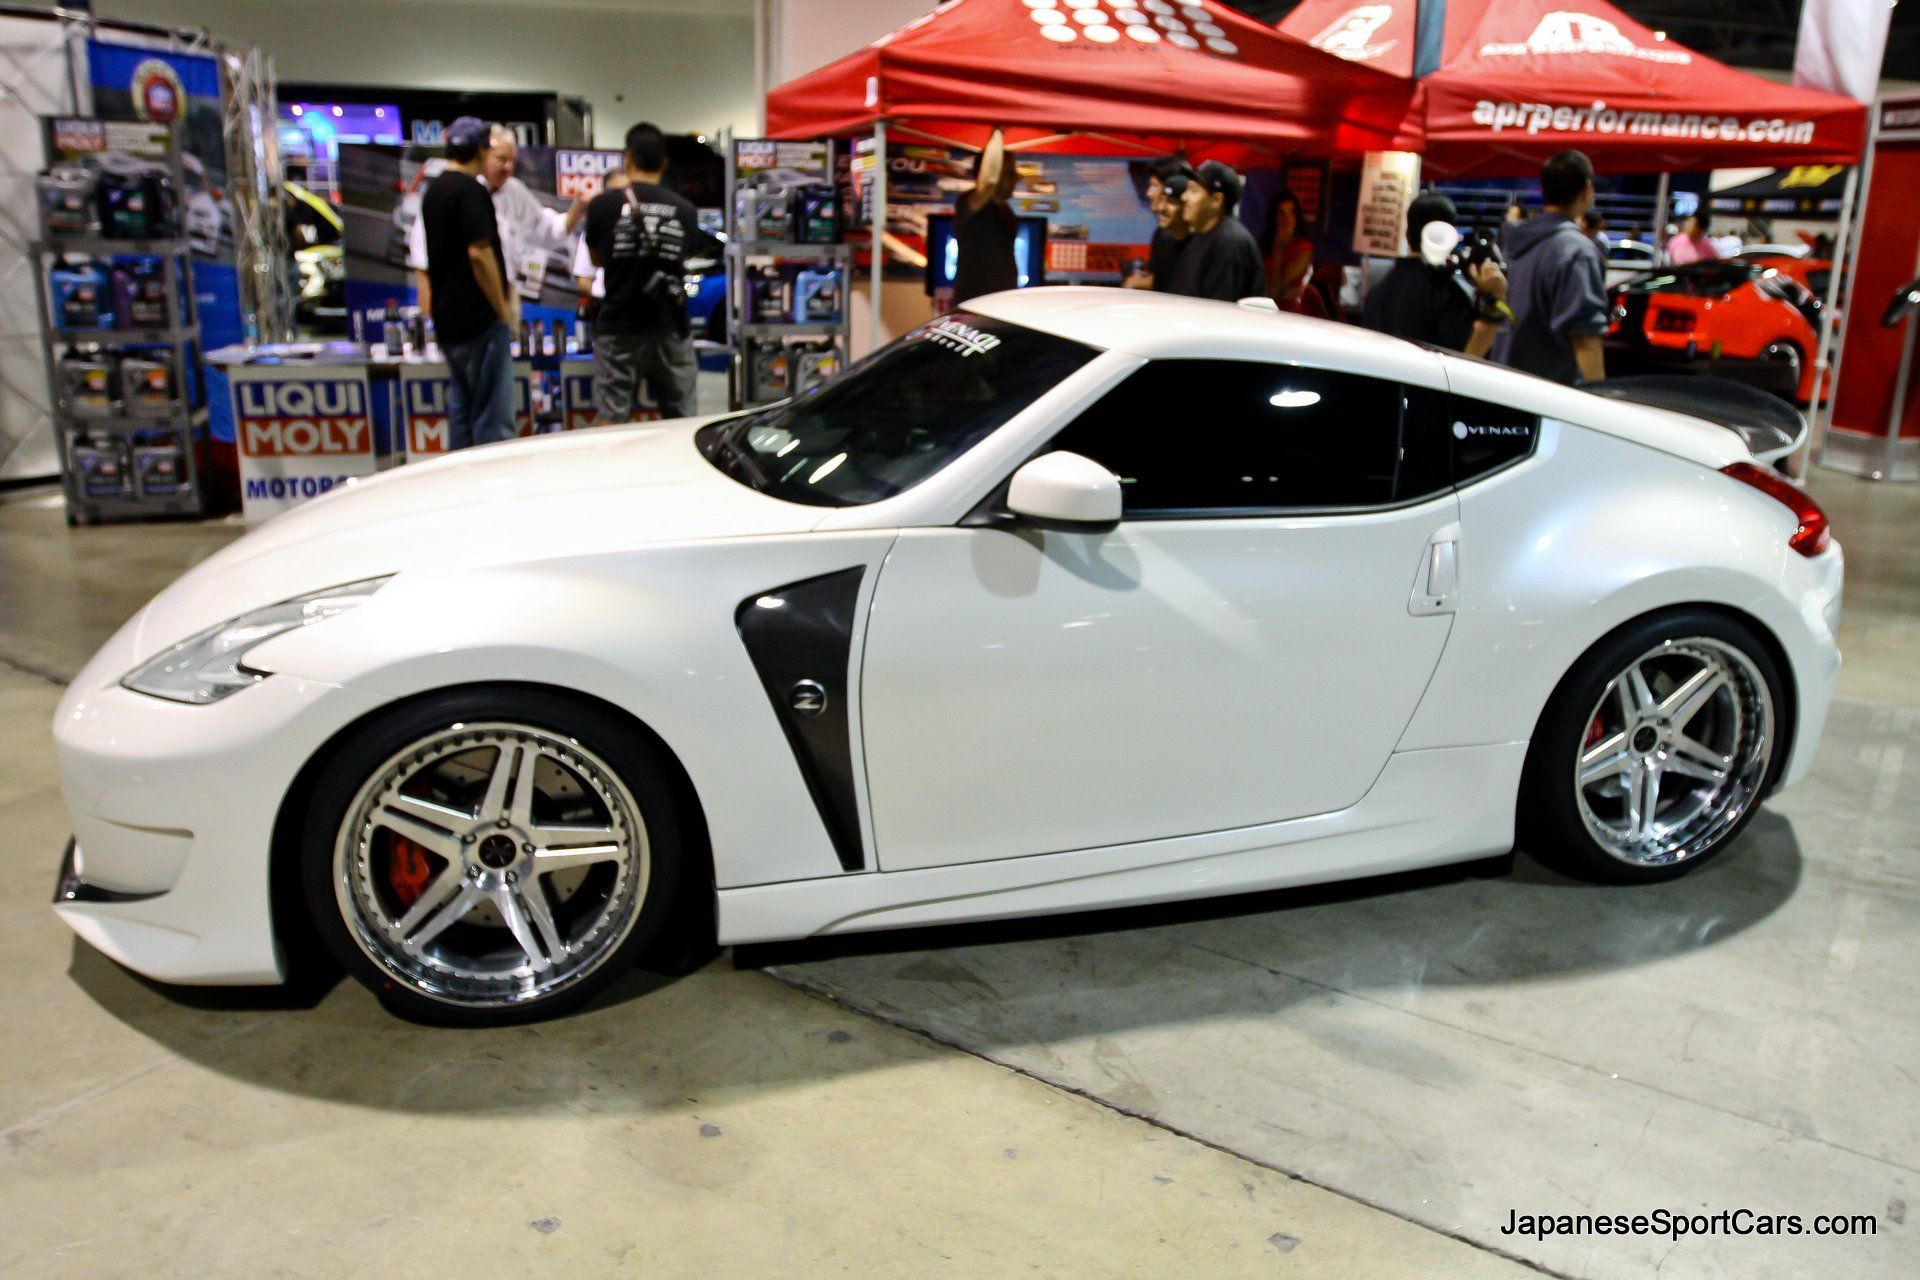 Picture of custom nissan 370z with amuse vestito body kit and venaci wheels